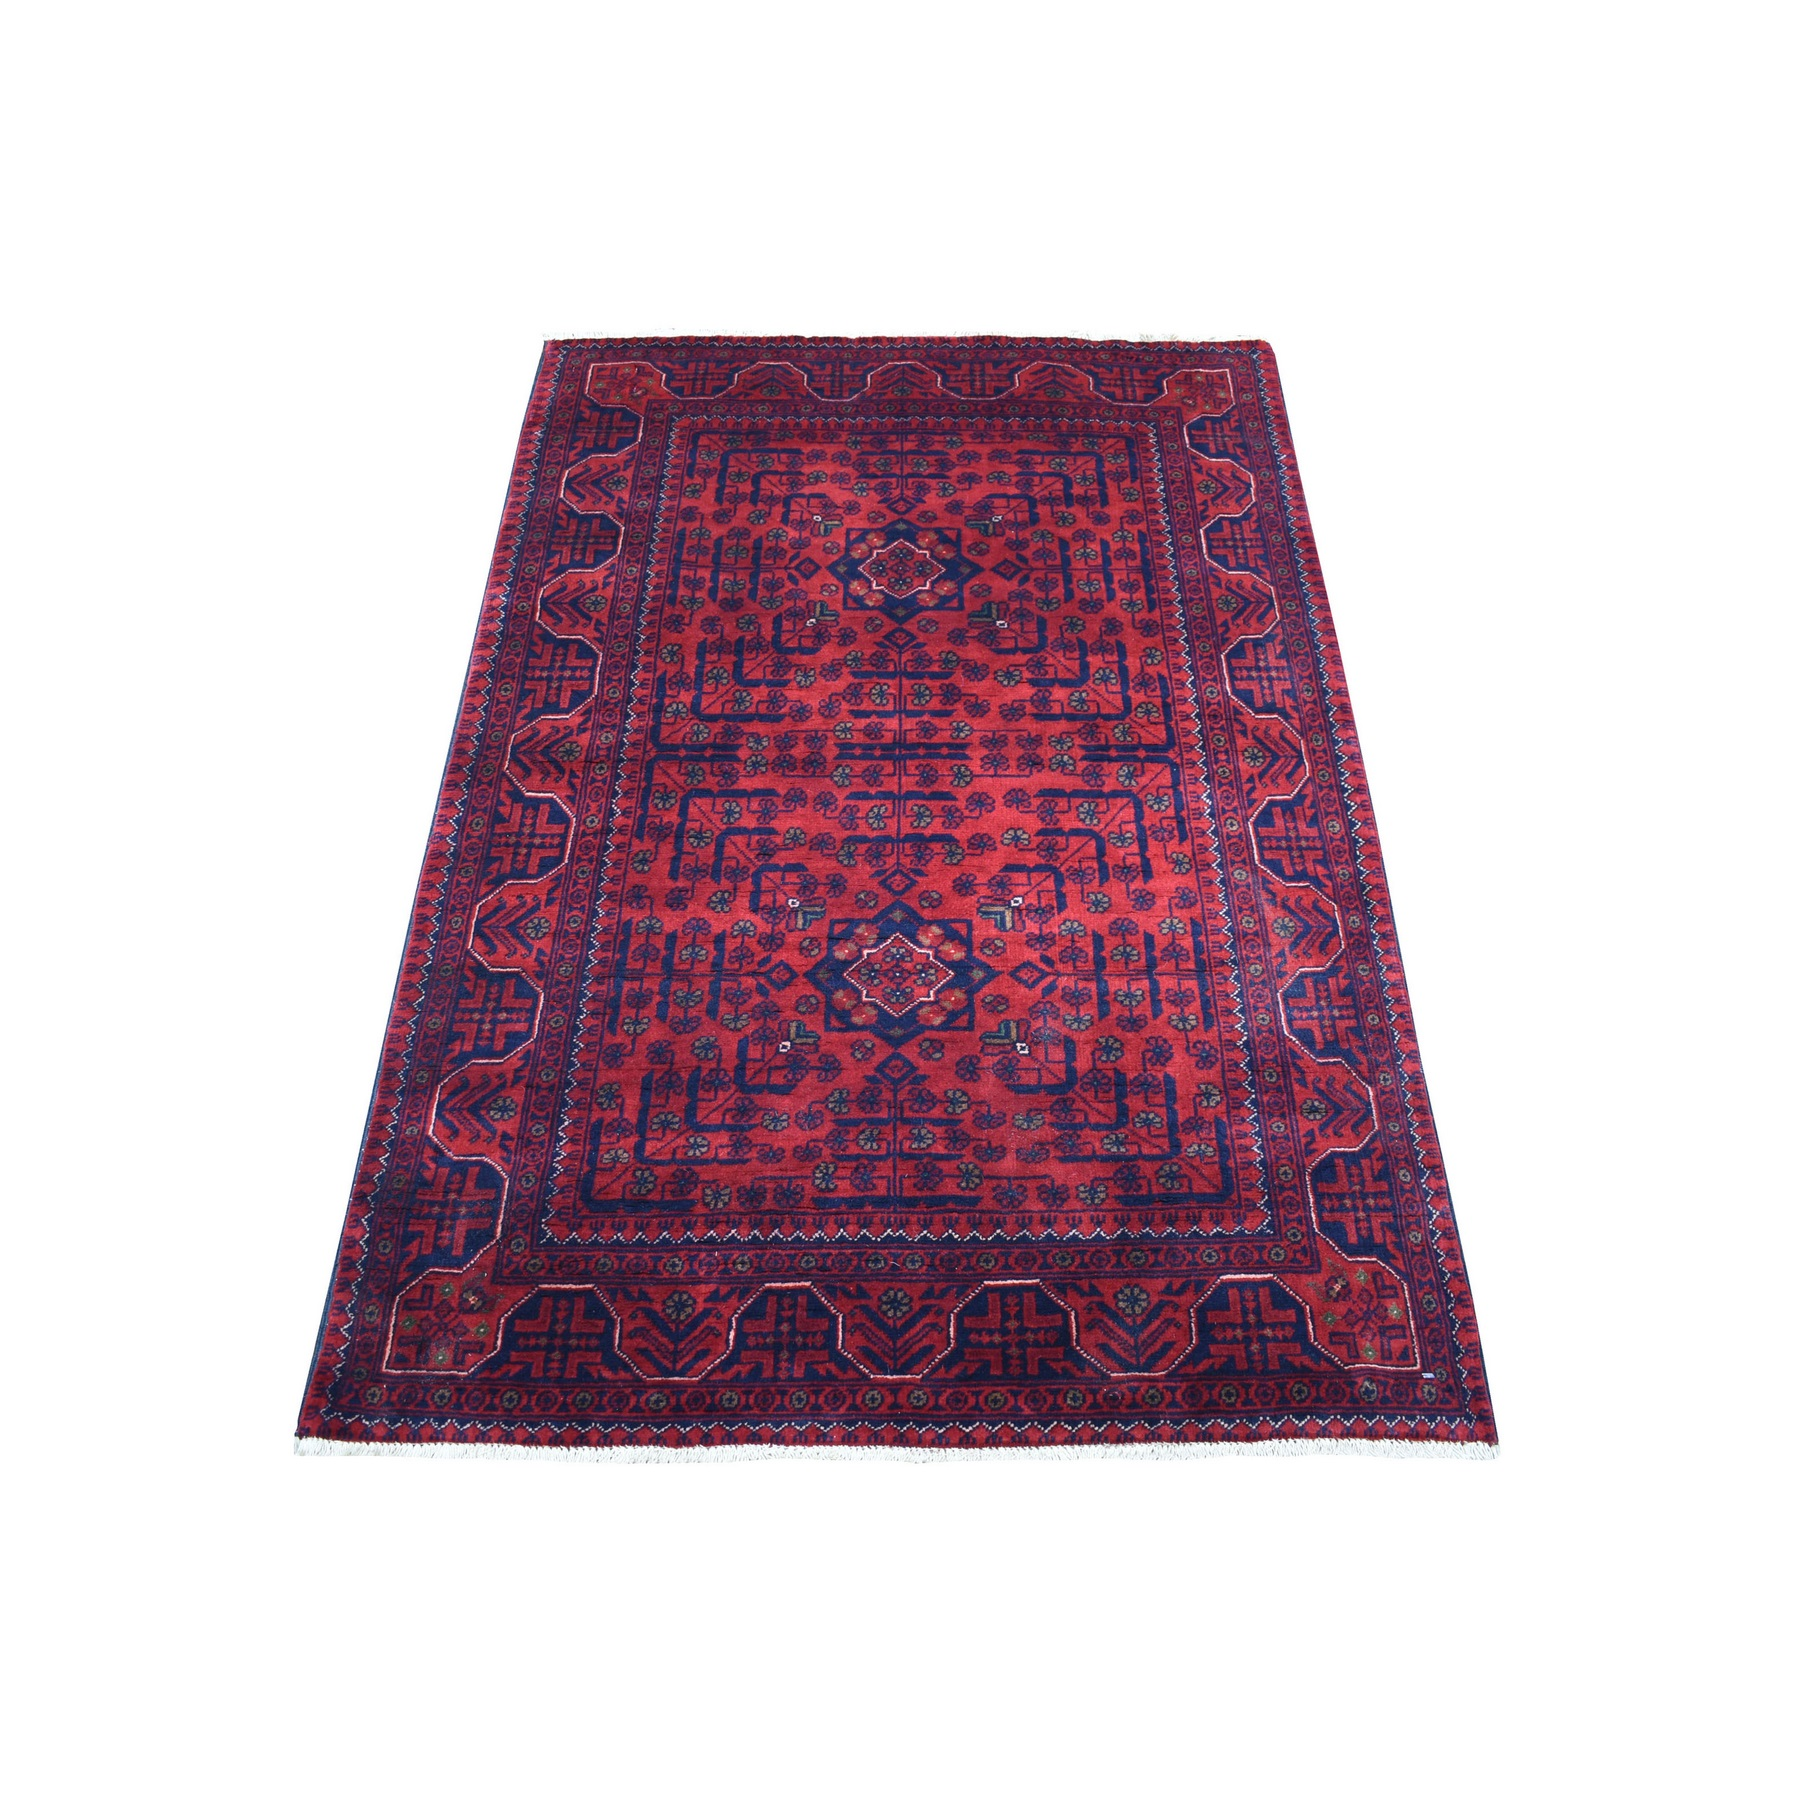 Nomadic And Village Collection Hand Knotted Red Rug No: 1136188